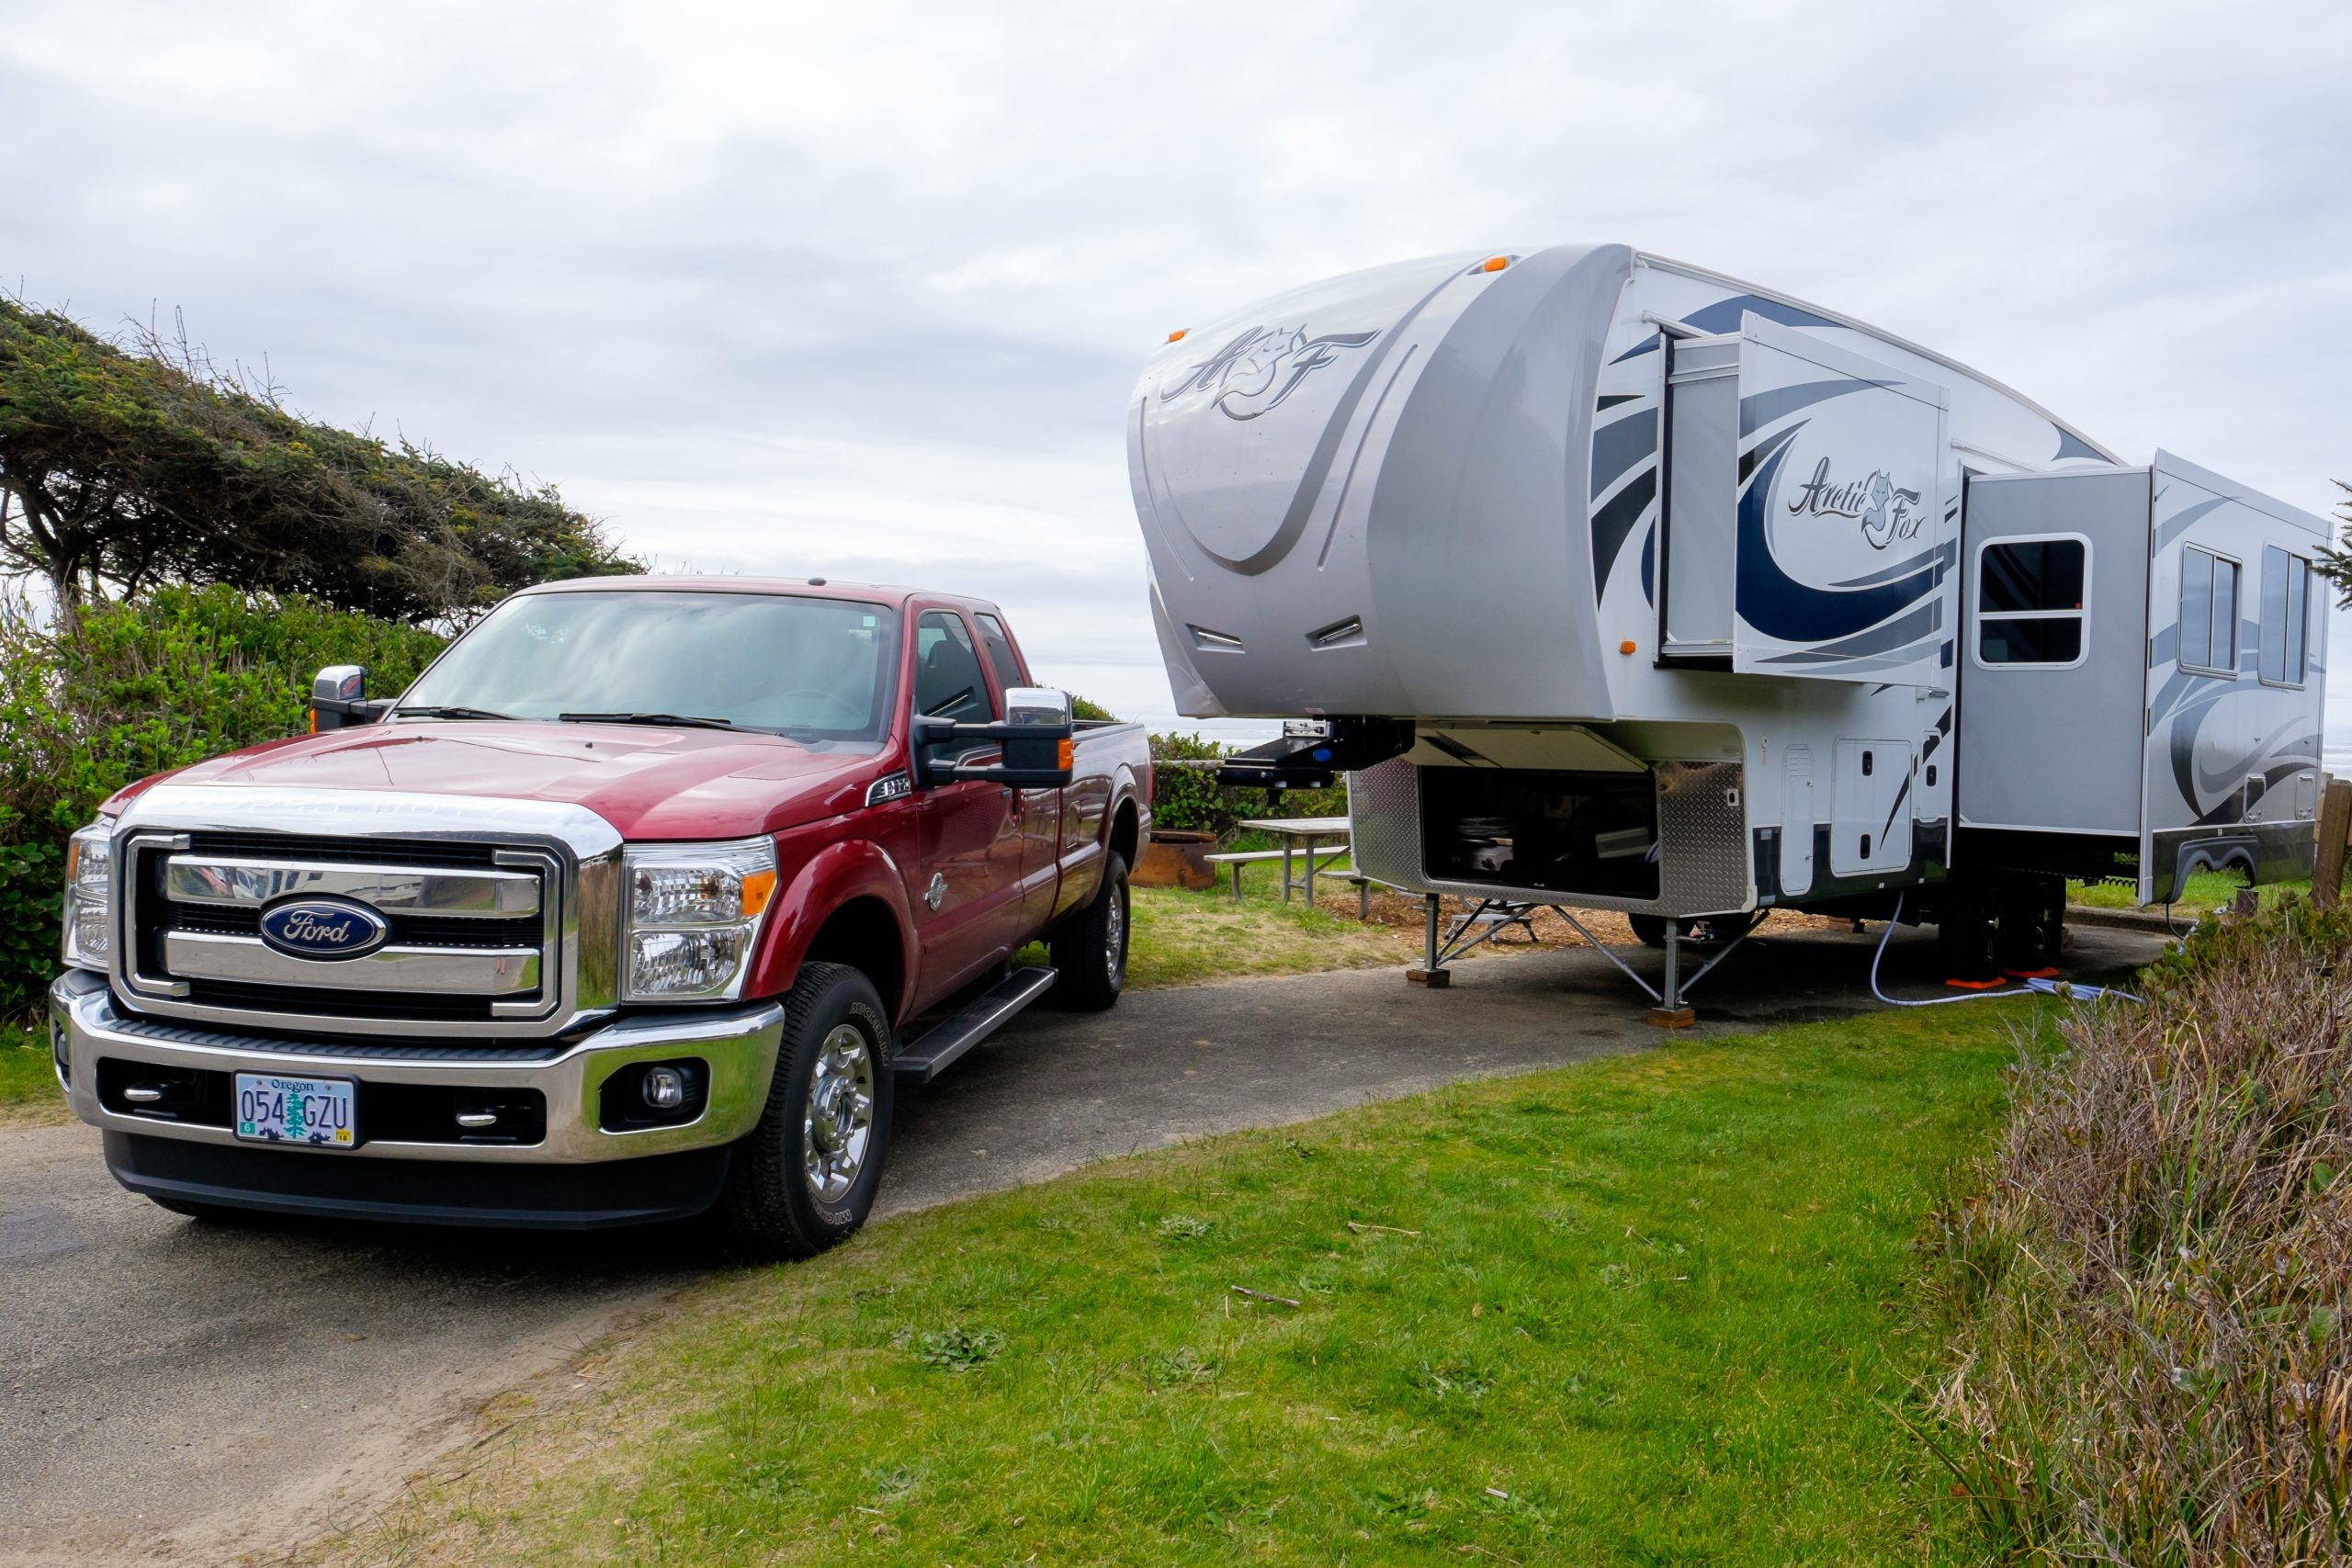 truck and fifth wheel in campsite